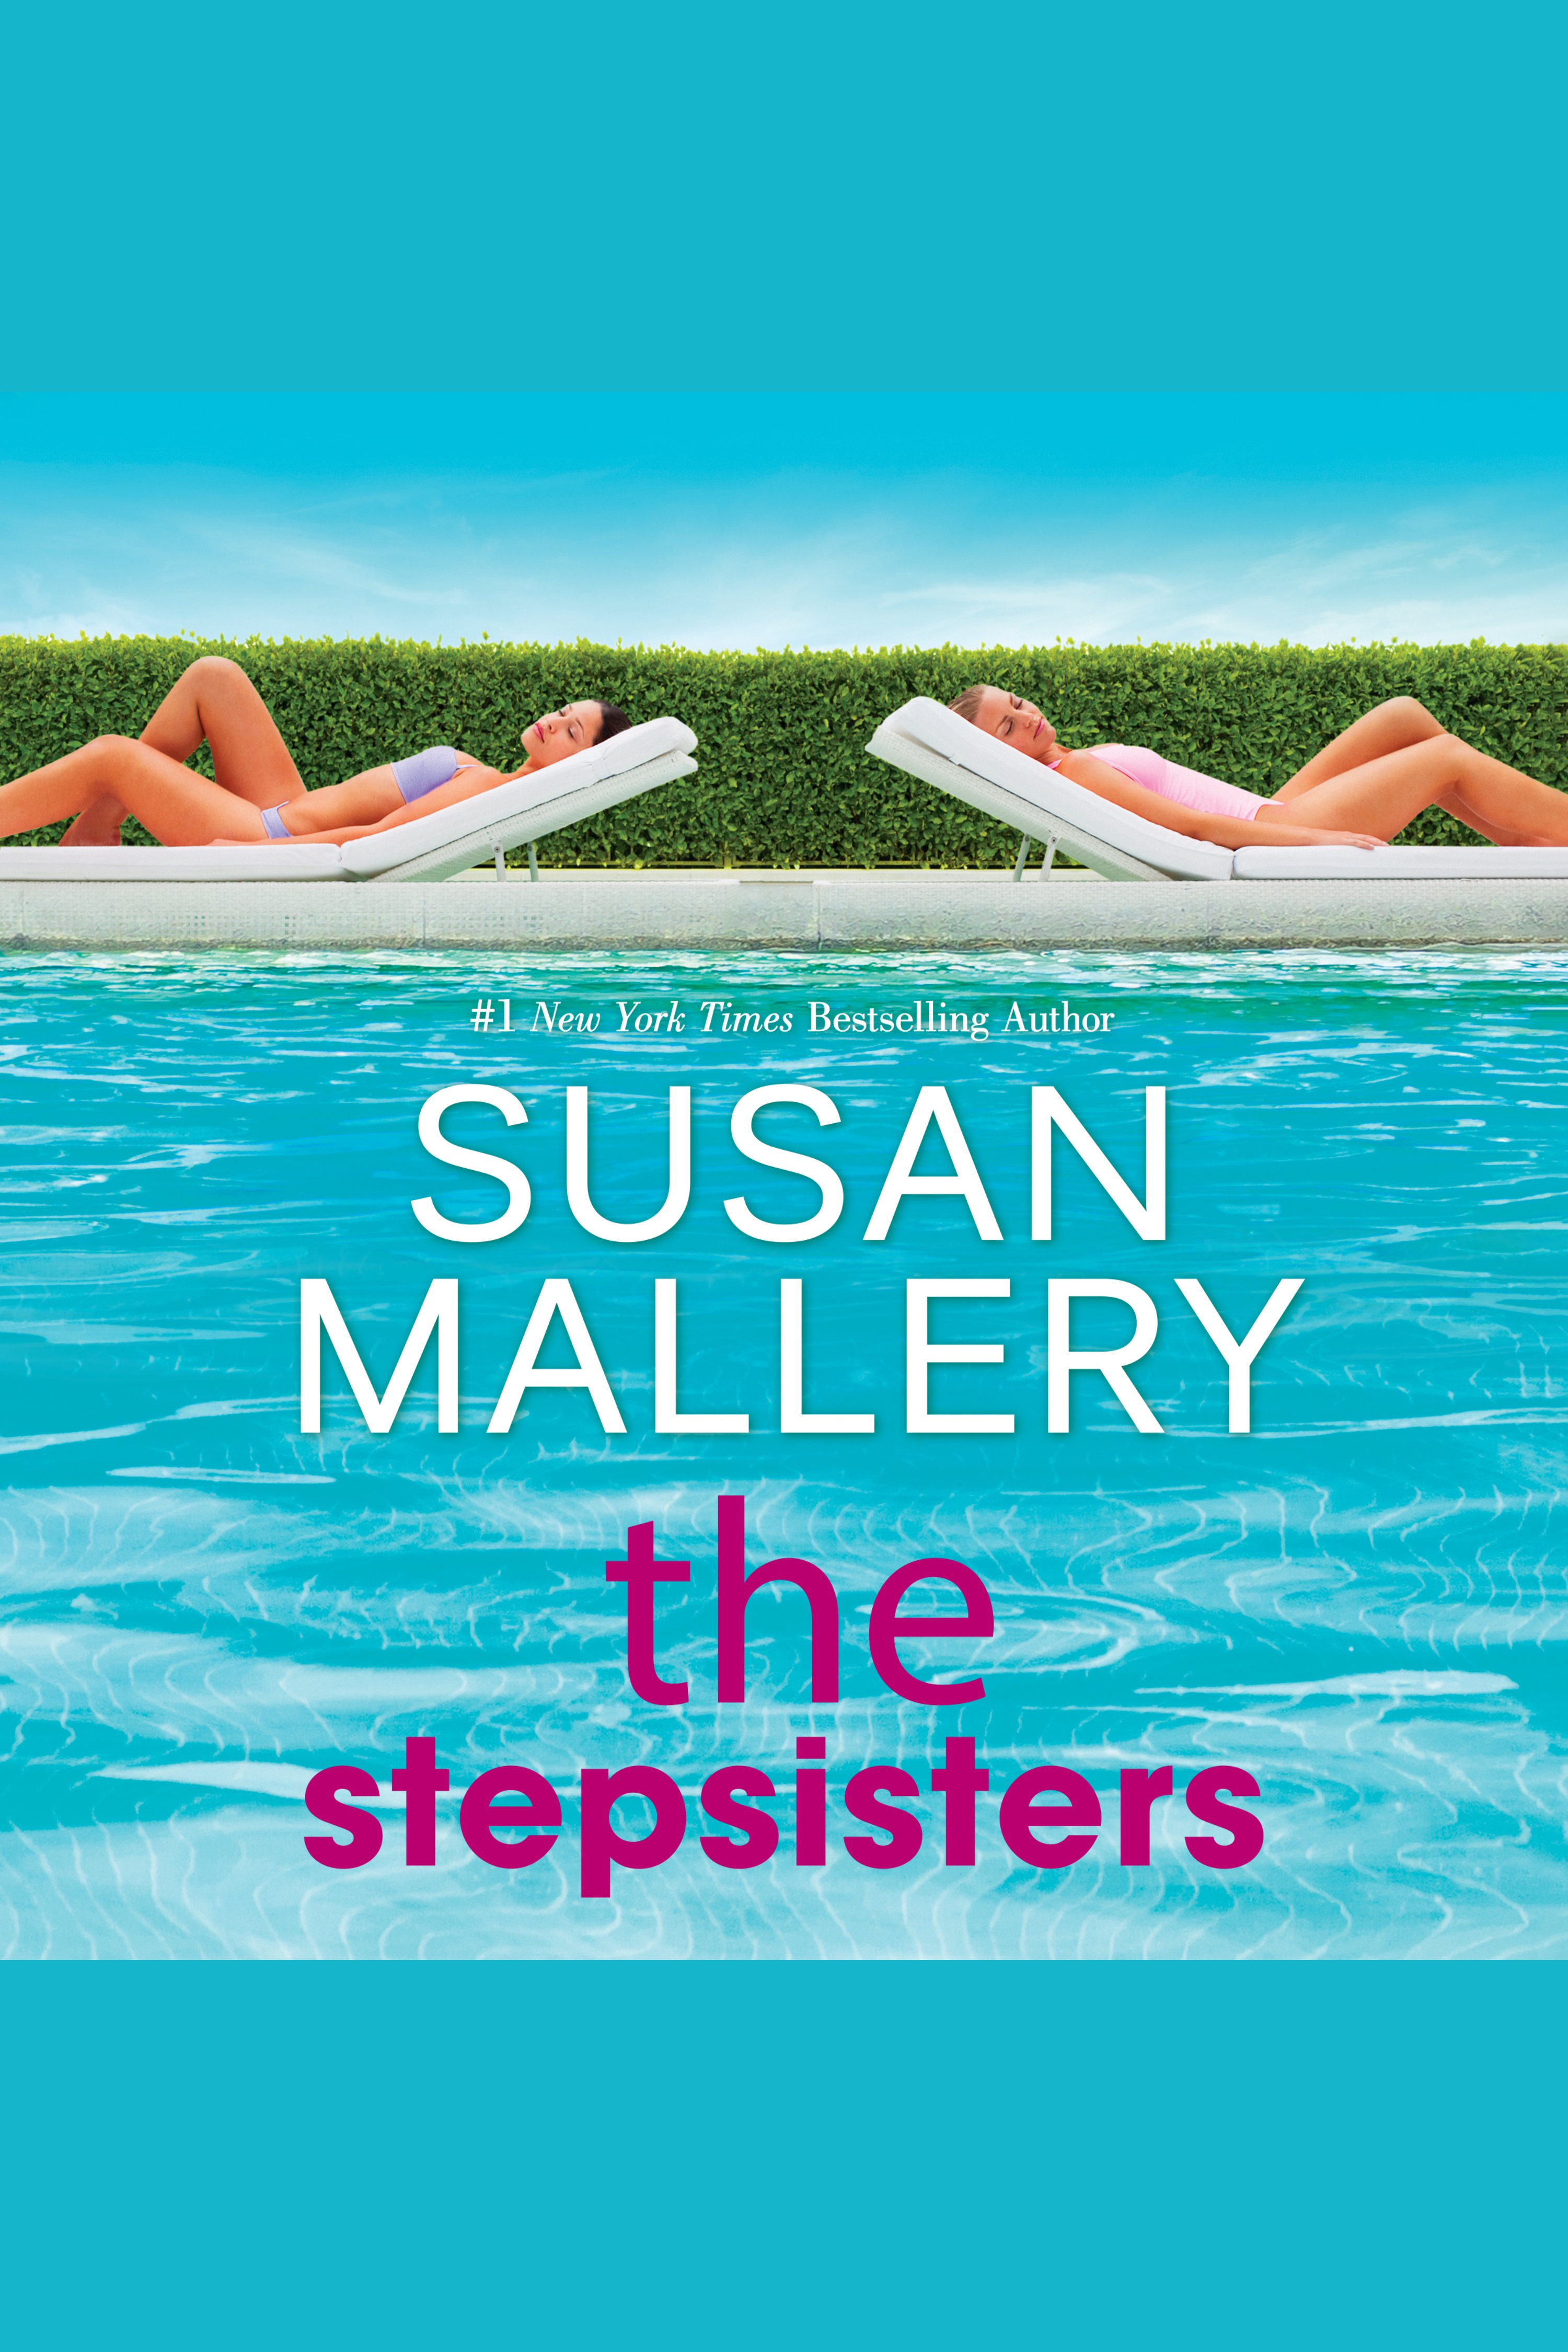 Stepsisters, The